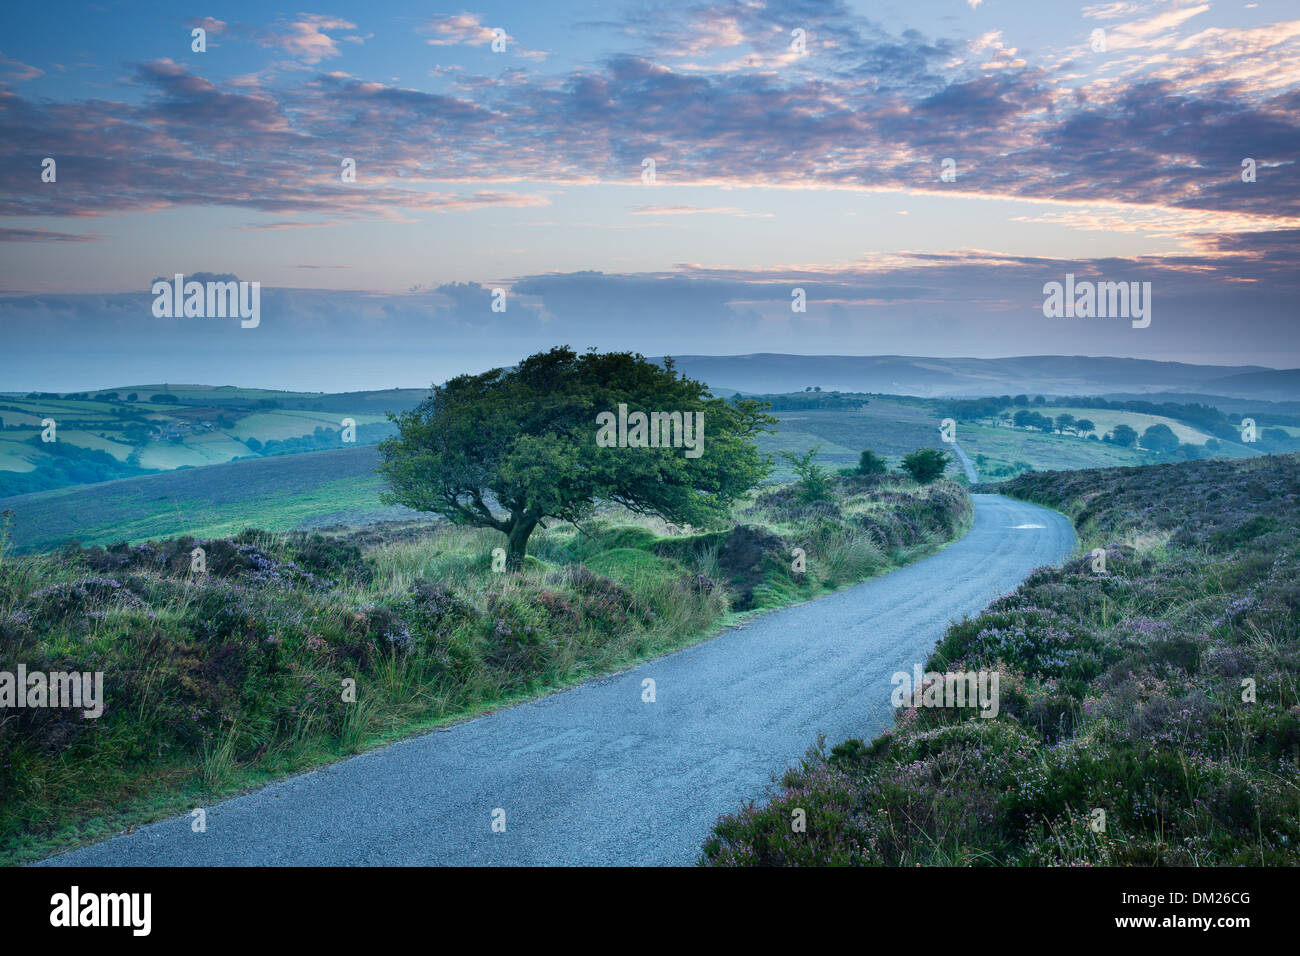 the road over Stoke Pero Common, Dunkery Hill, Exmoor National Park, Somerset, England, UK - Stock Image